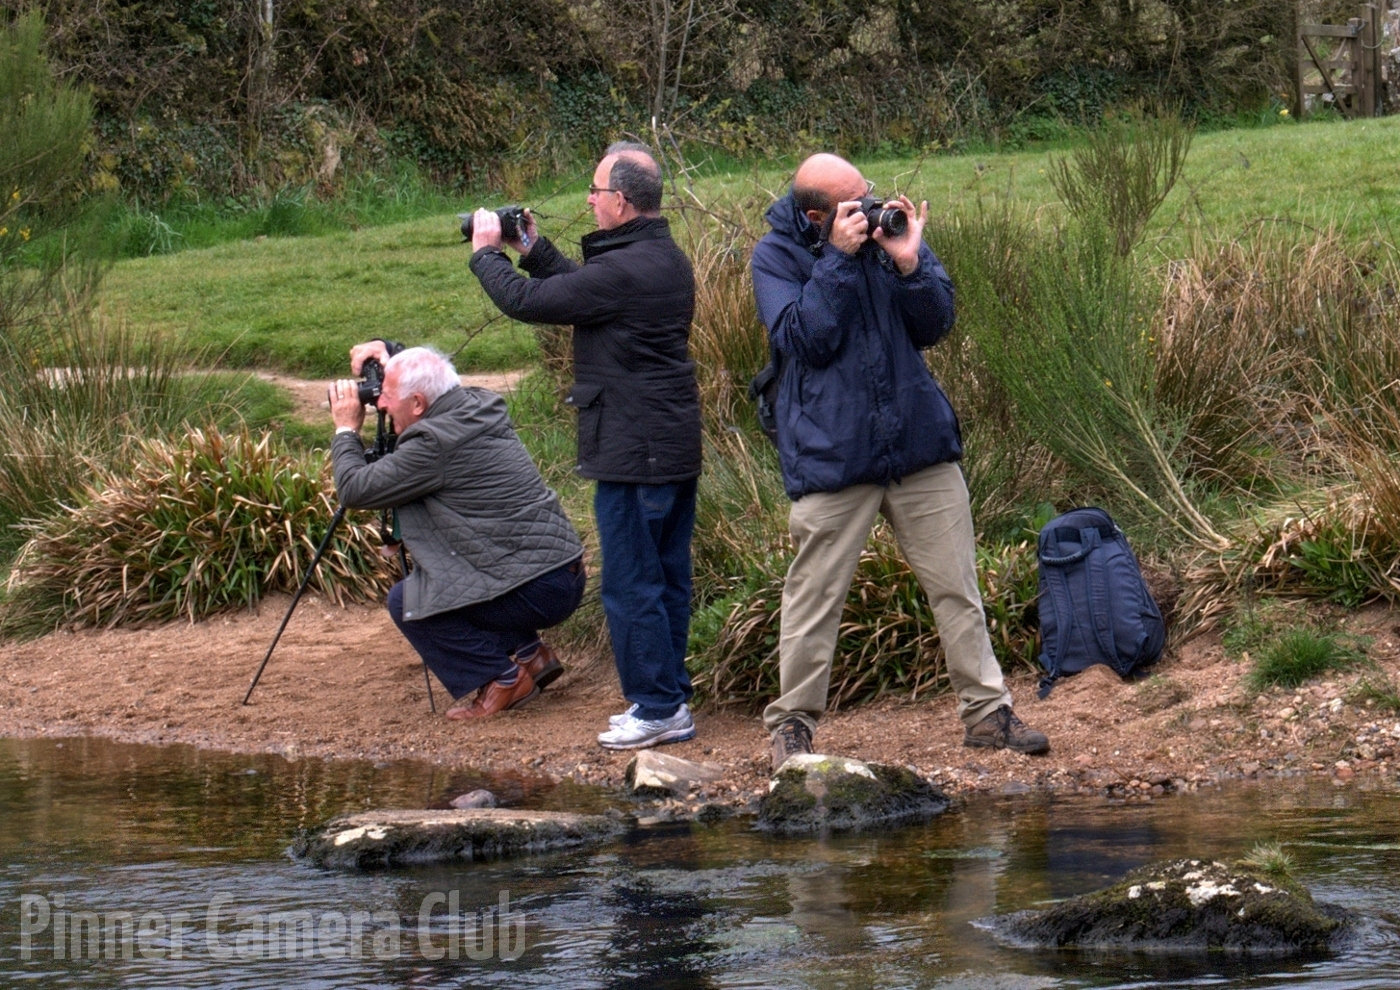 9. PHOTOGRAPHERS by Jim Niblett